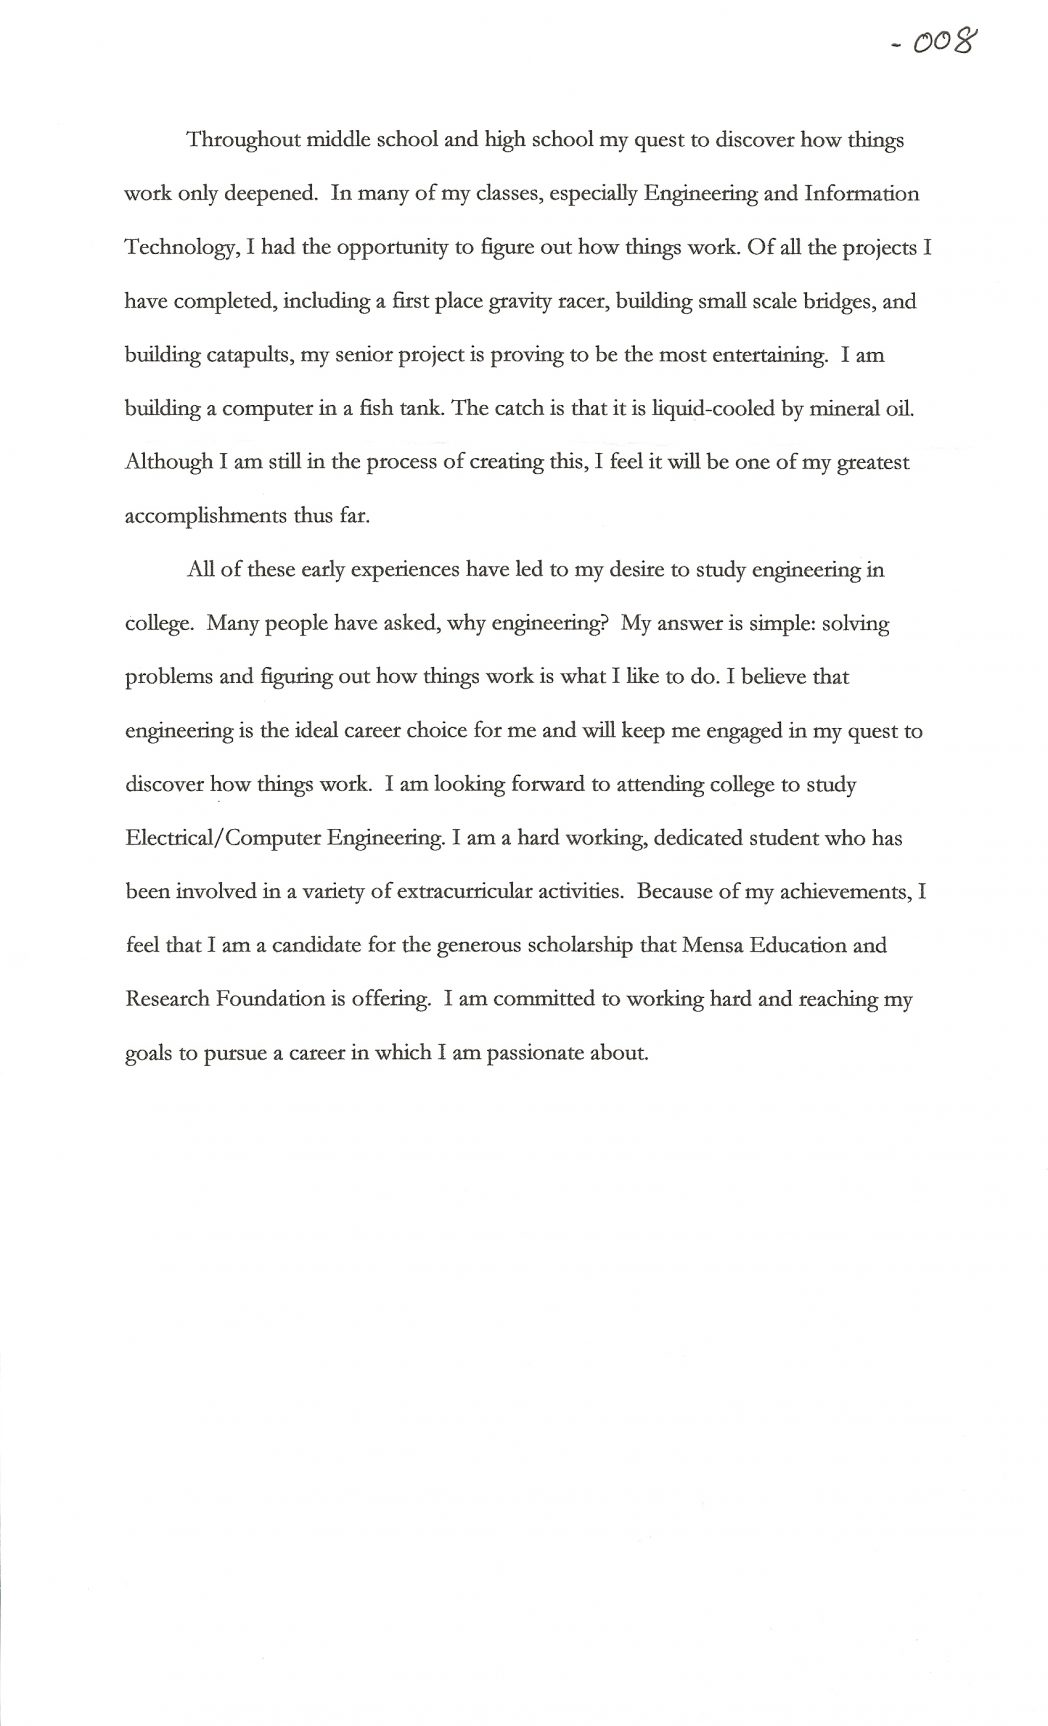 014 Sample Essay For Scholarship Scholarships Cover Letter Contests High School Juniors Joshua Cate No 1048x1726 Incredible Mara Personal Pdf Full